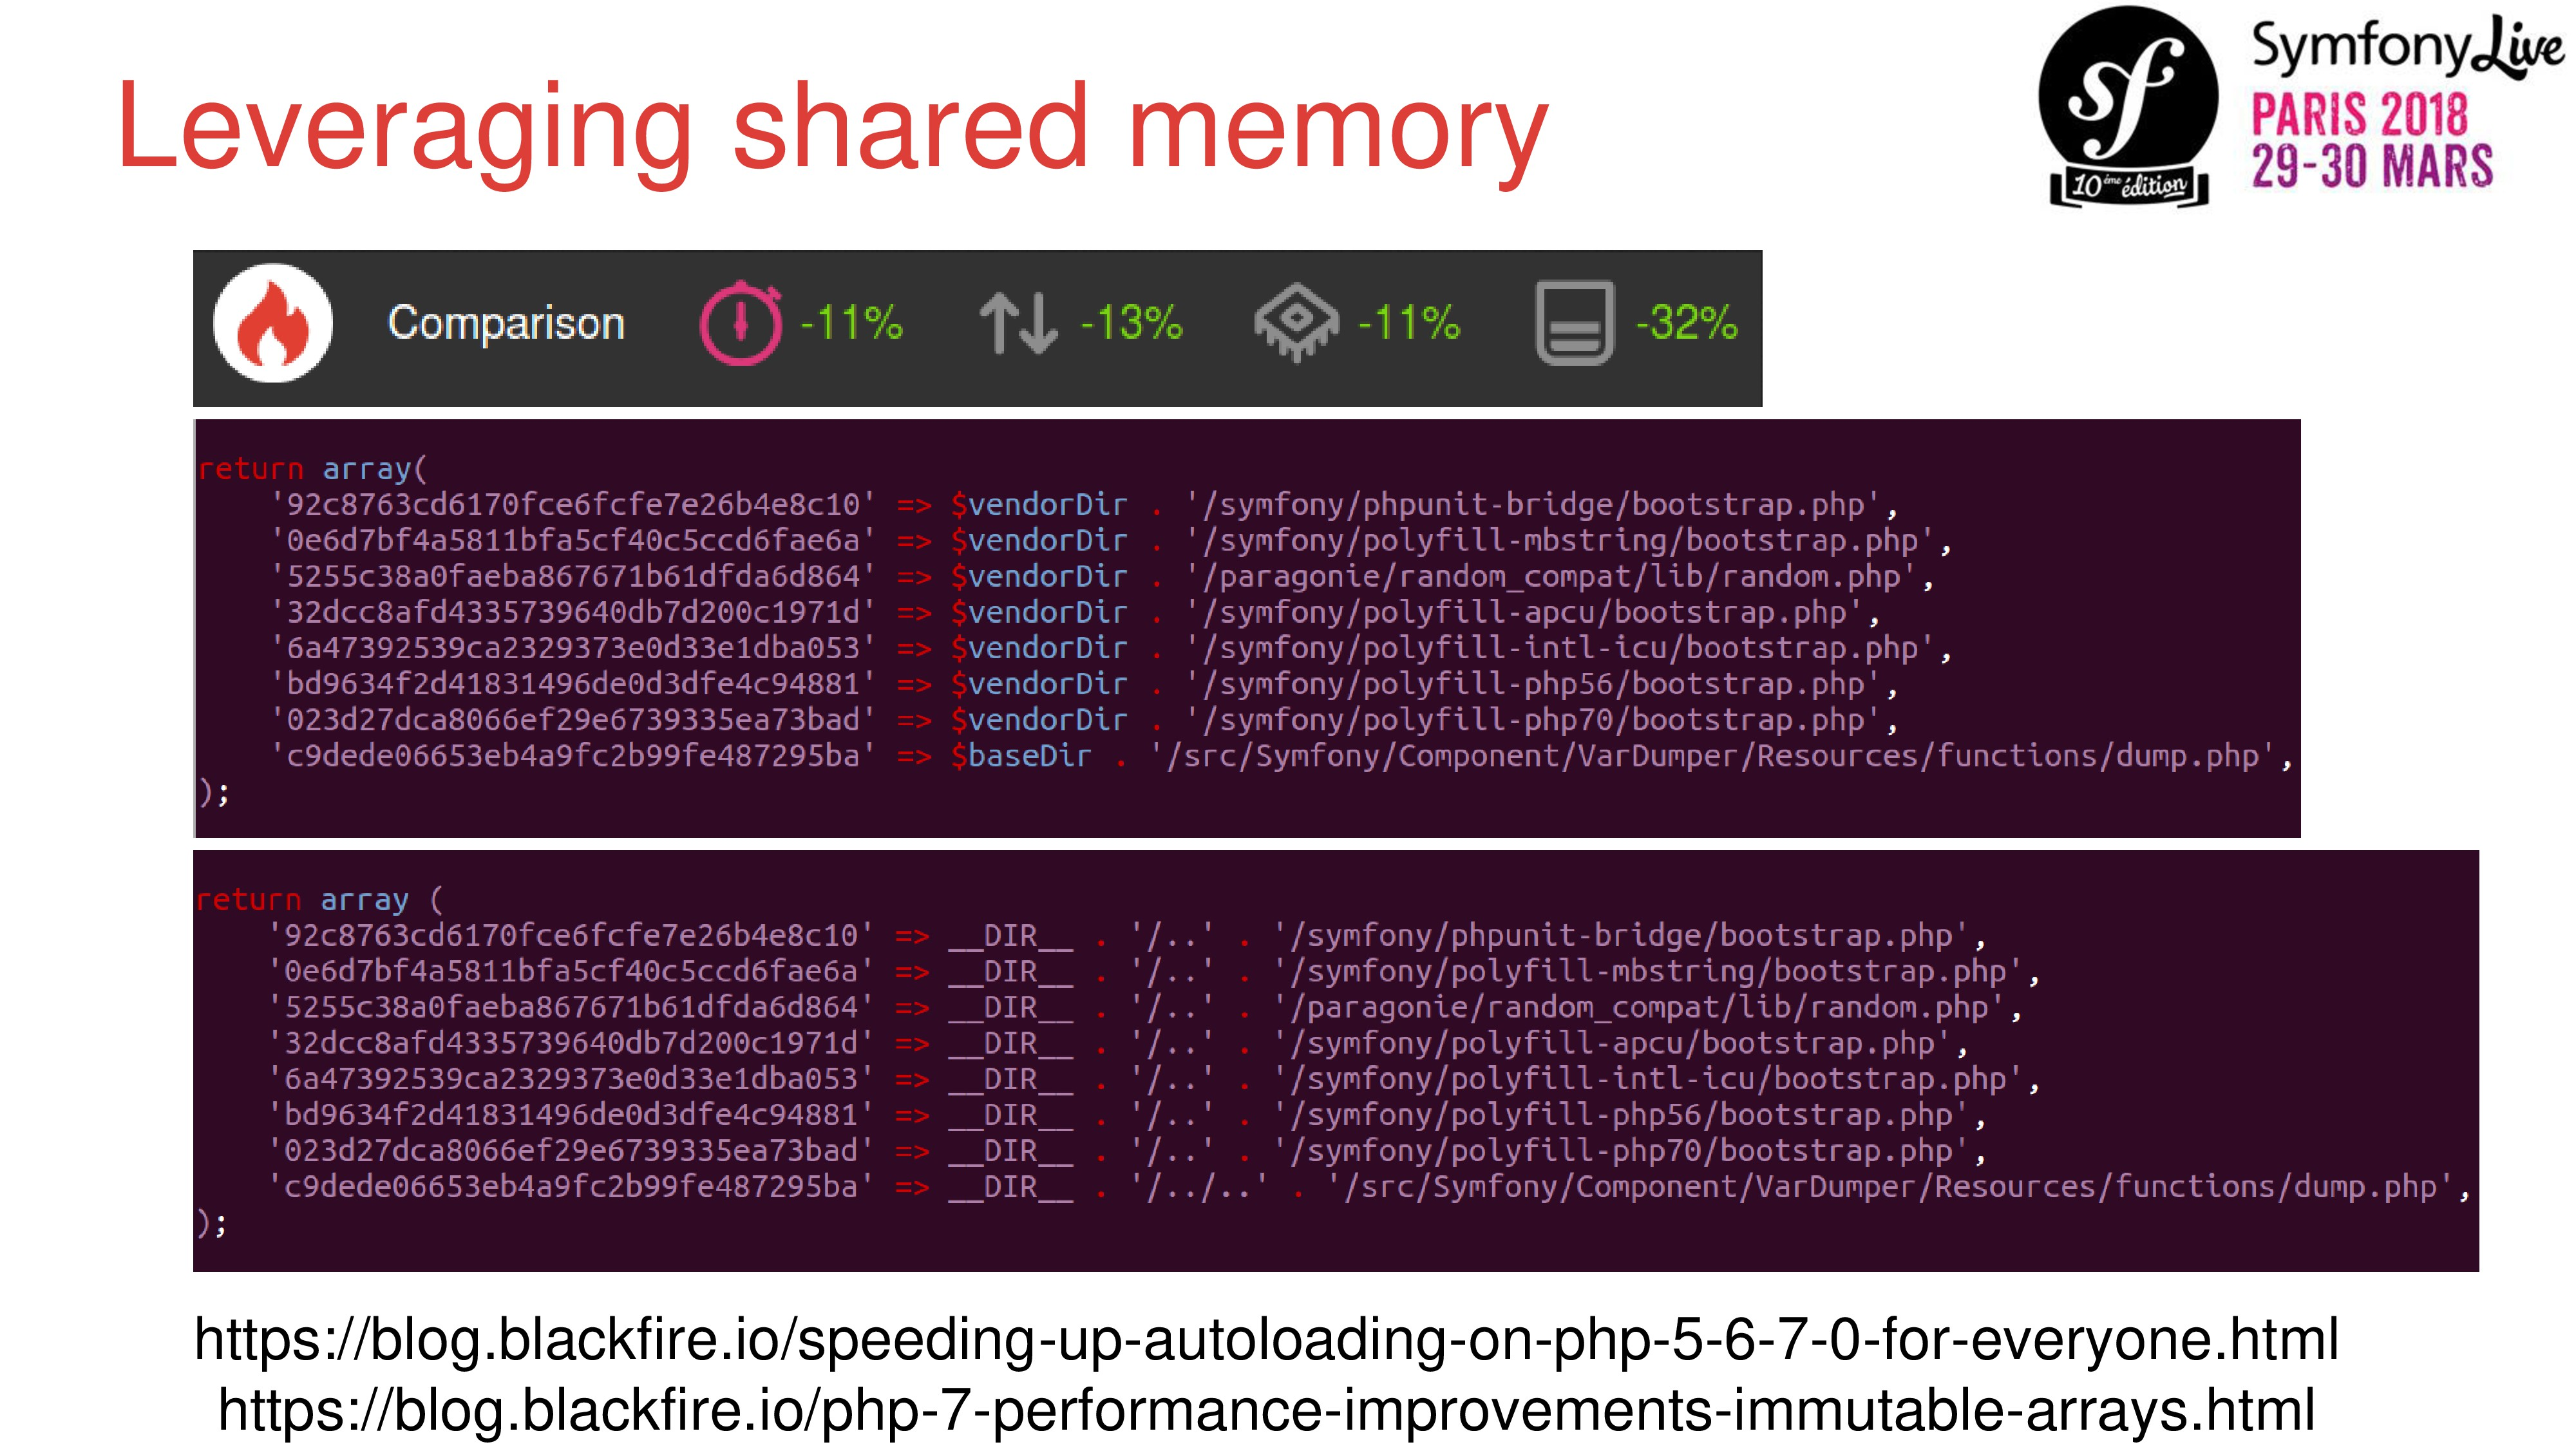 Leveraging shared memory https://blog.blackfire...